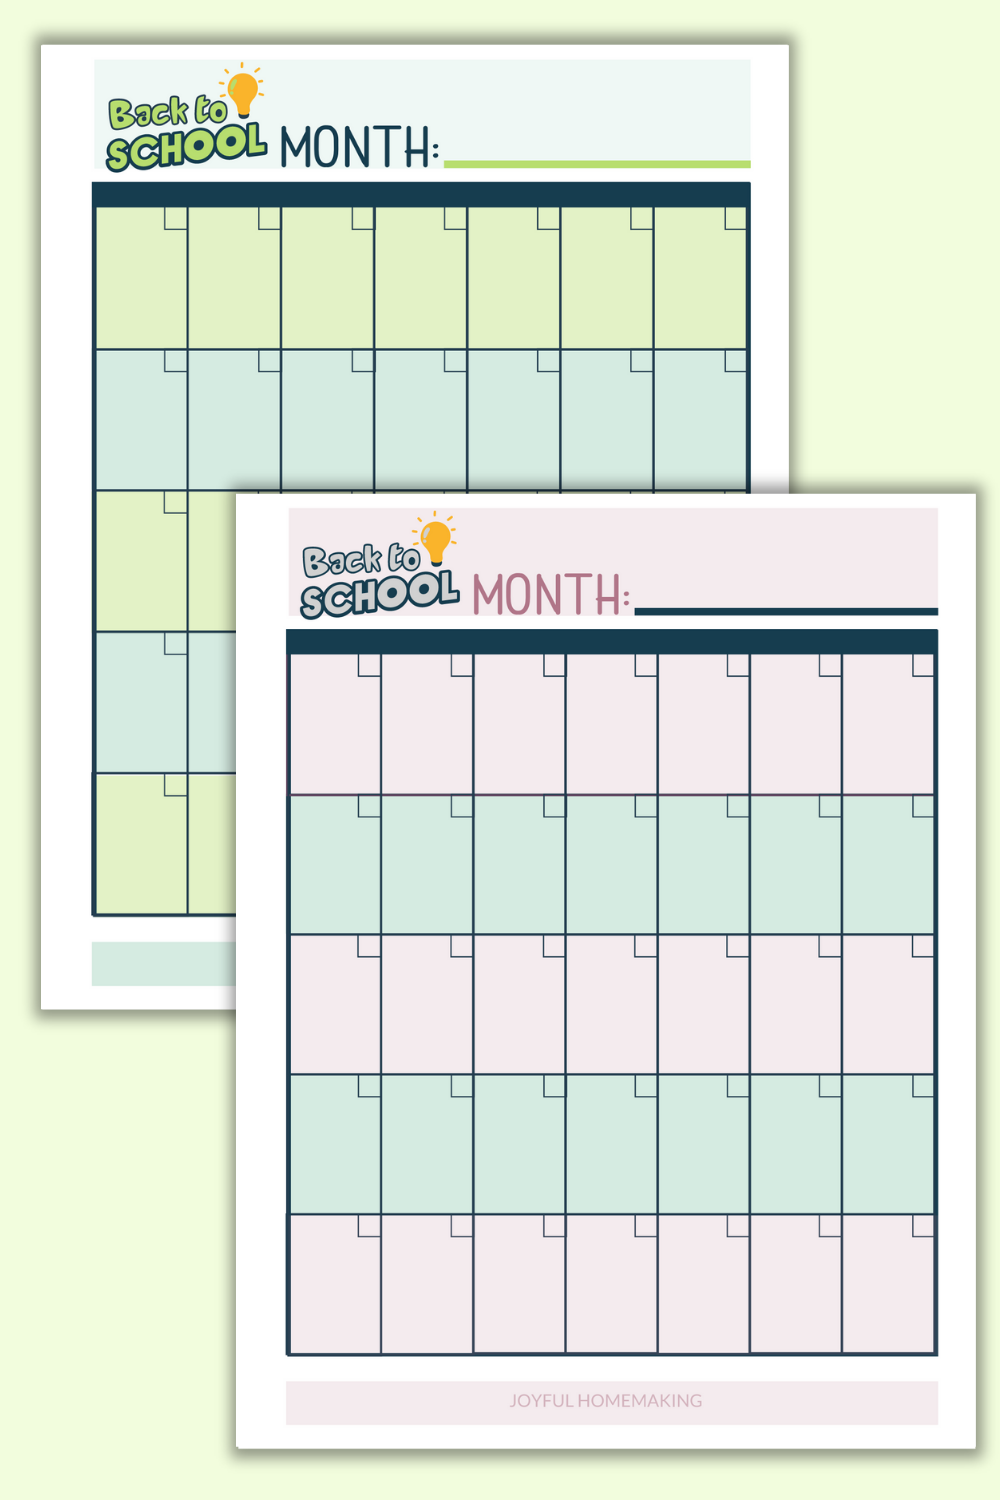 Purple and green monthly printable school schedules.